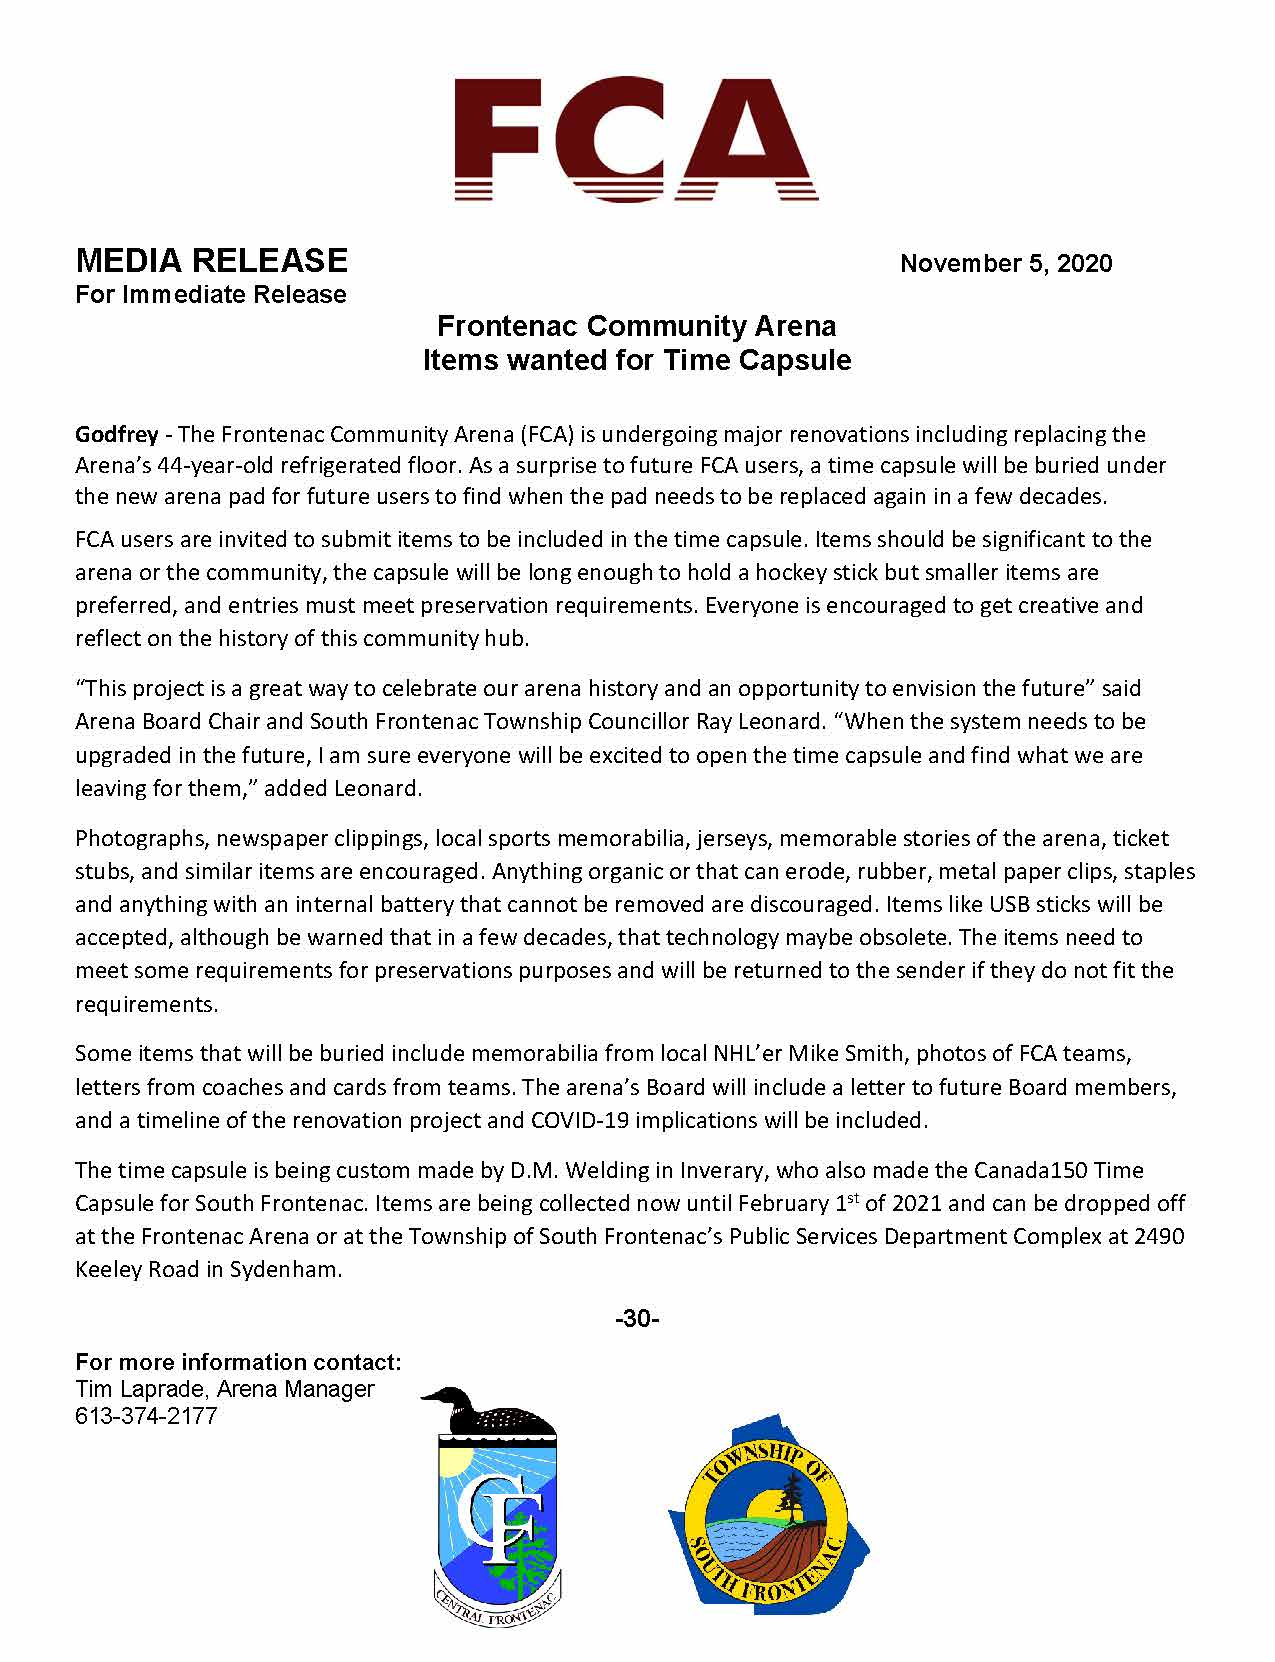 For Immediate Release_FCA Time Capsule